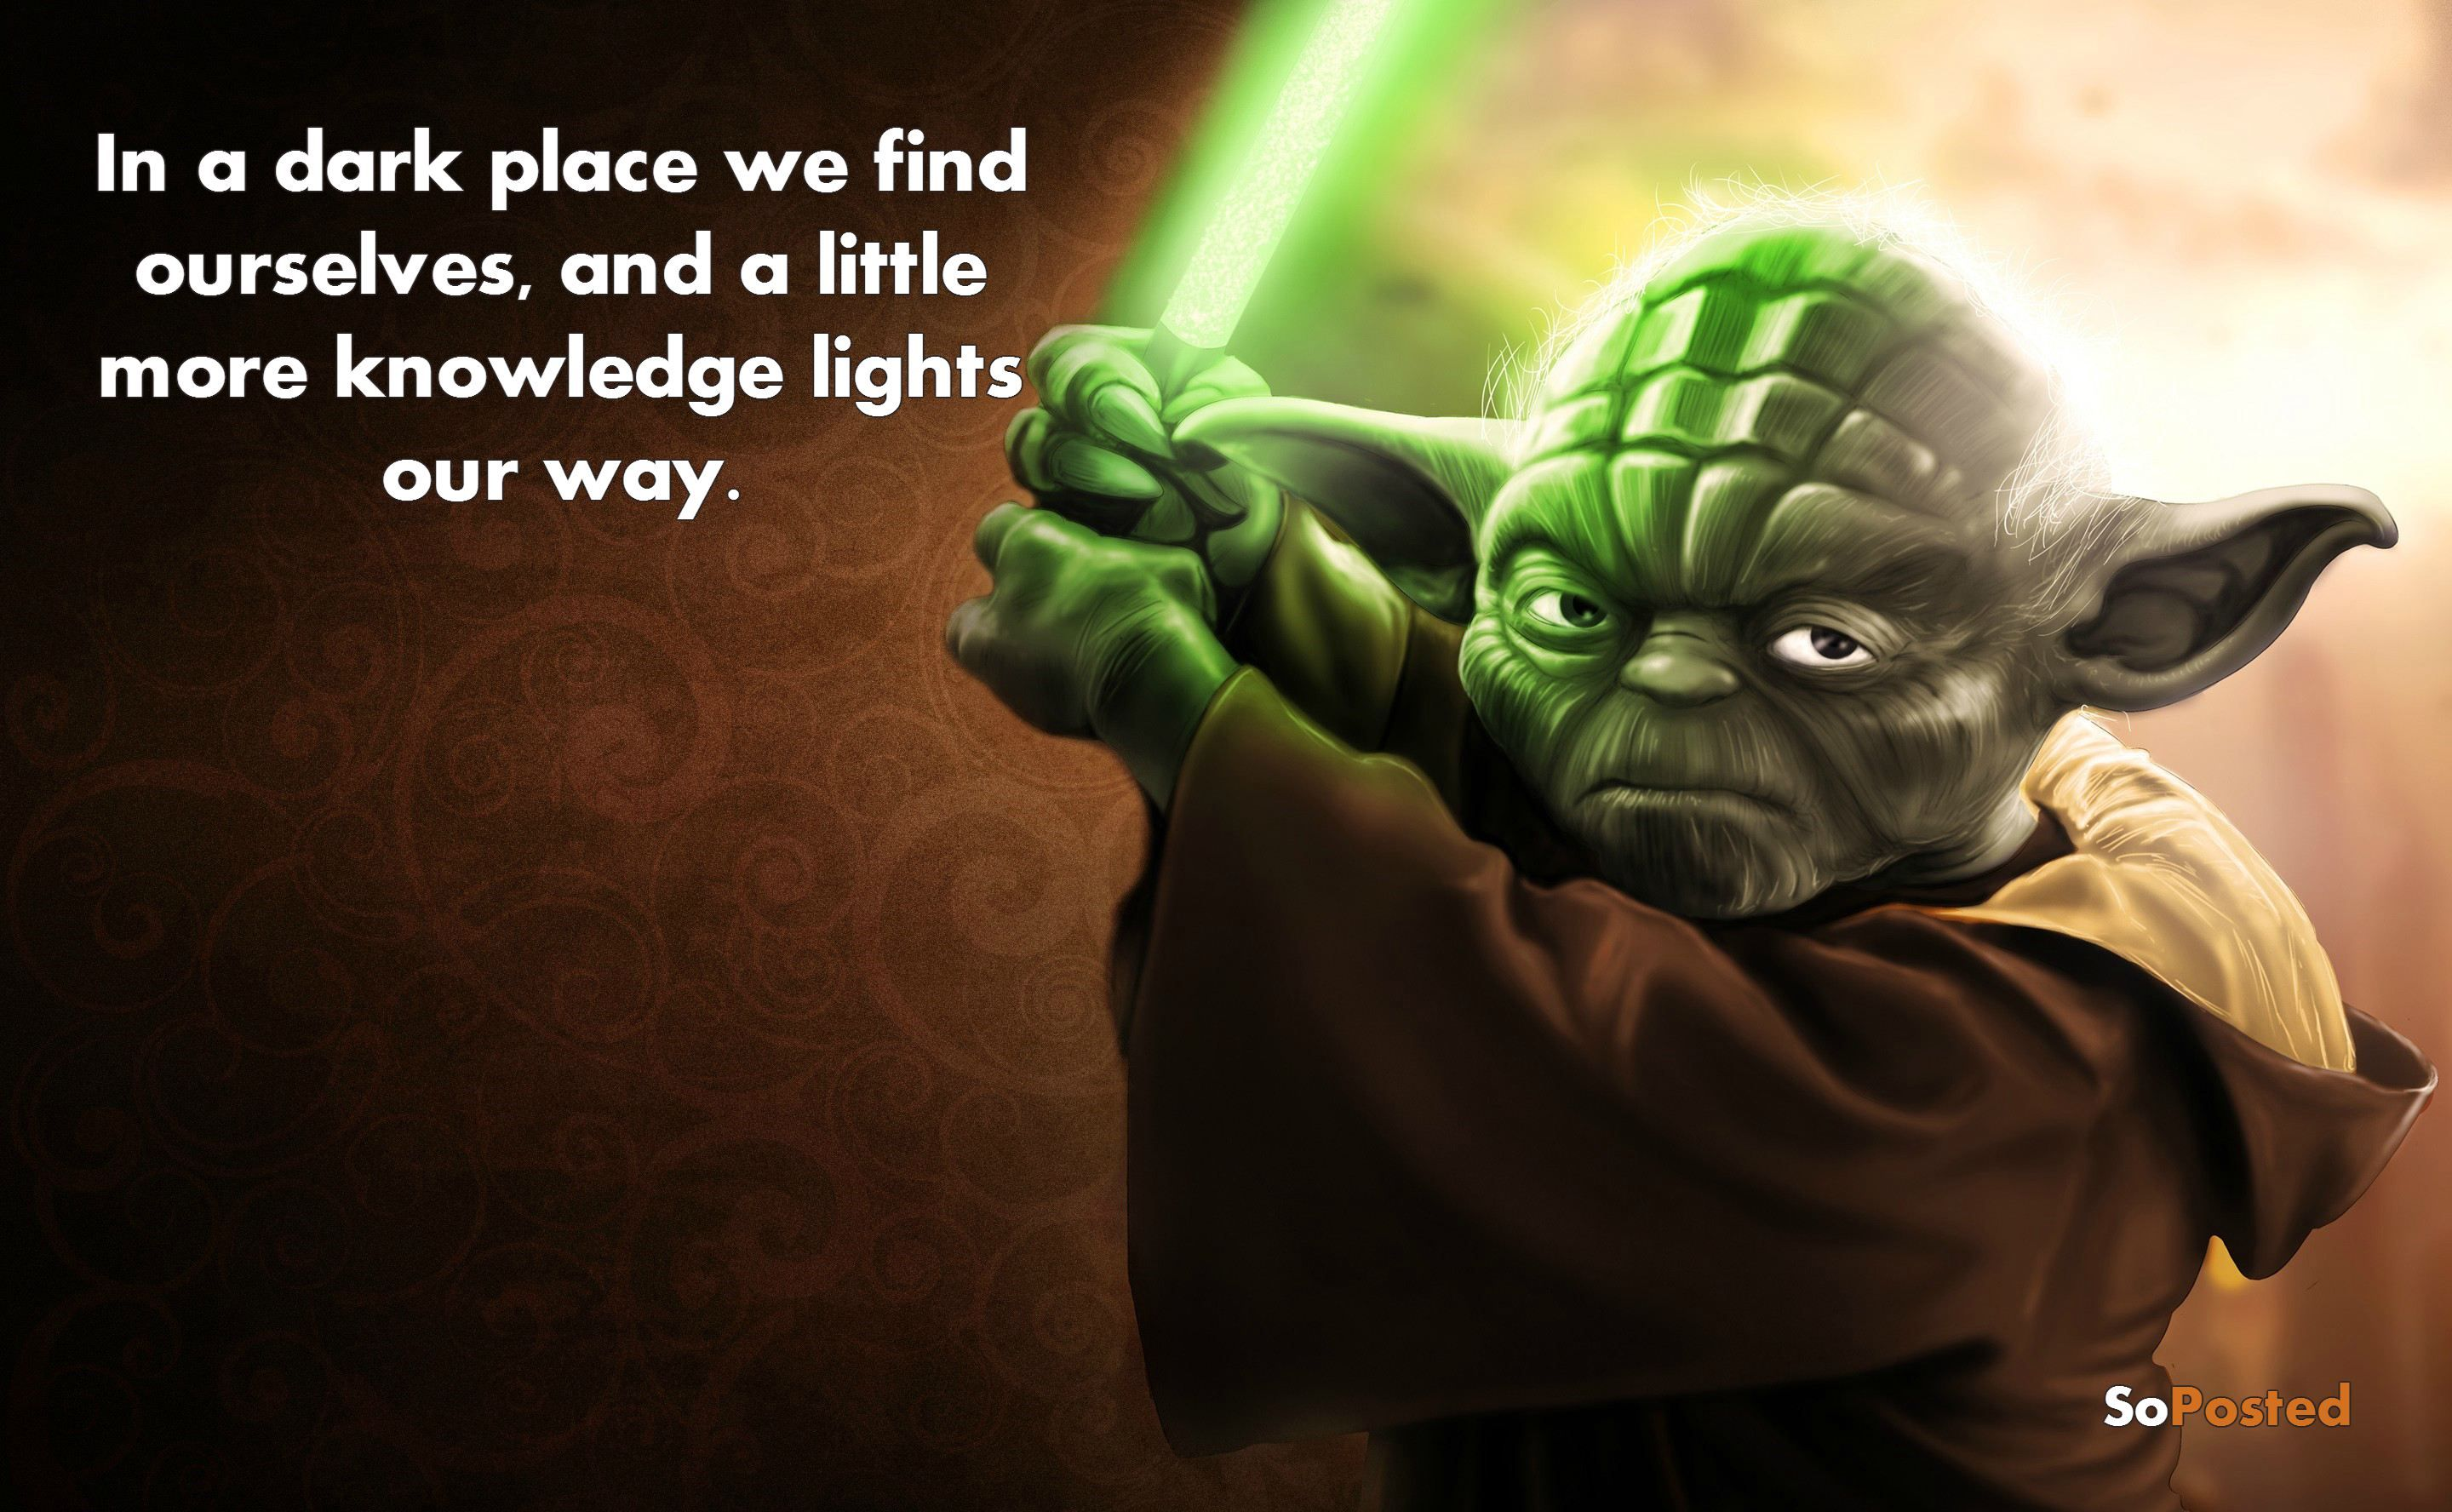 In A Dark Place We Find Ourselves And A Little More Knowledge Lights Our Way Yoda Qotd Starwars Yoda Wallpaper Yoda Quotes Yoda